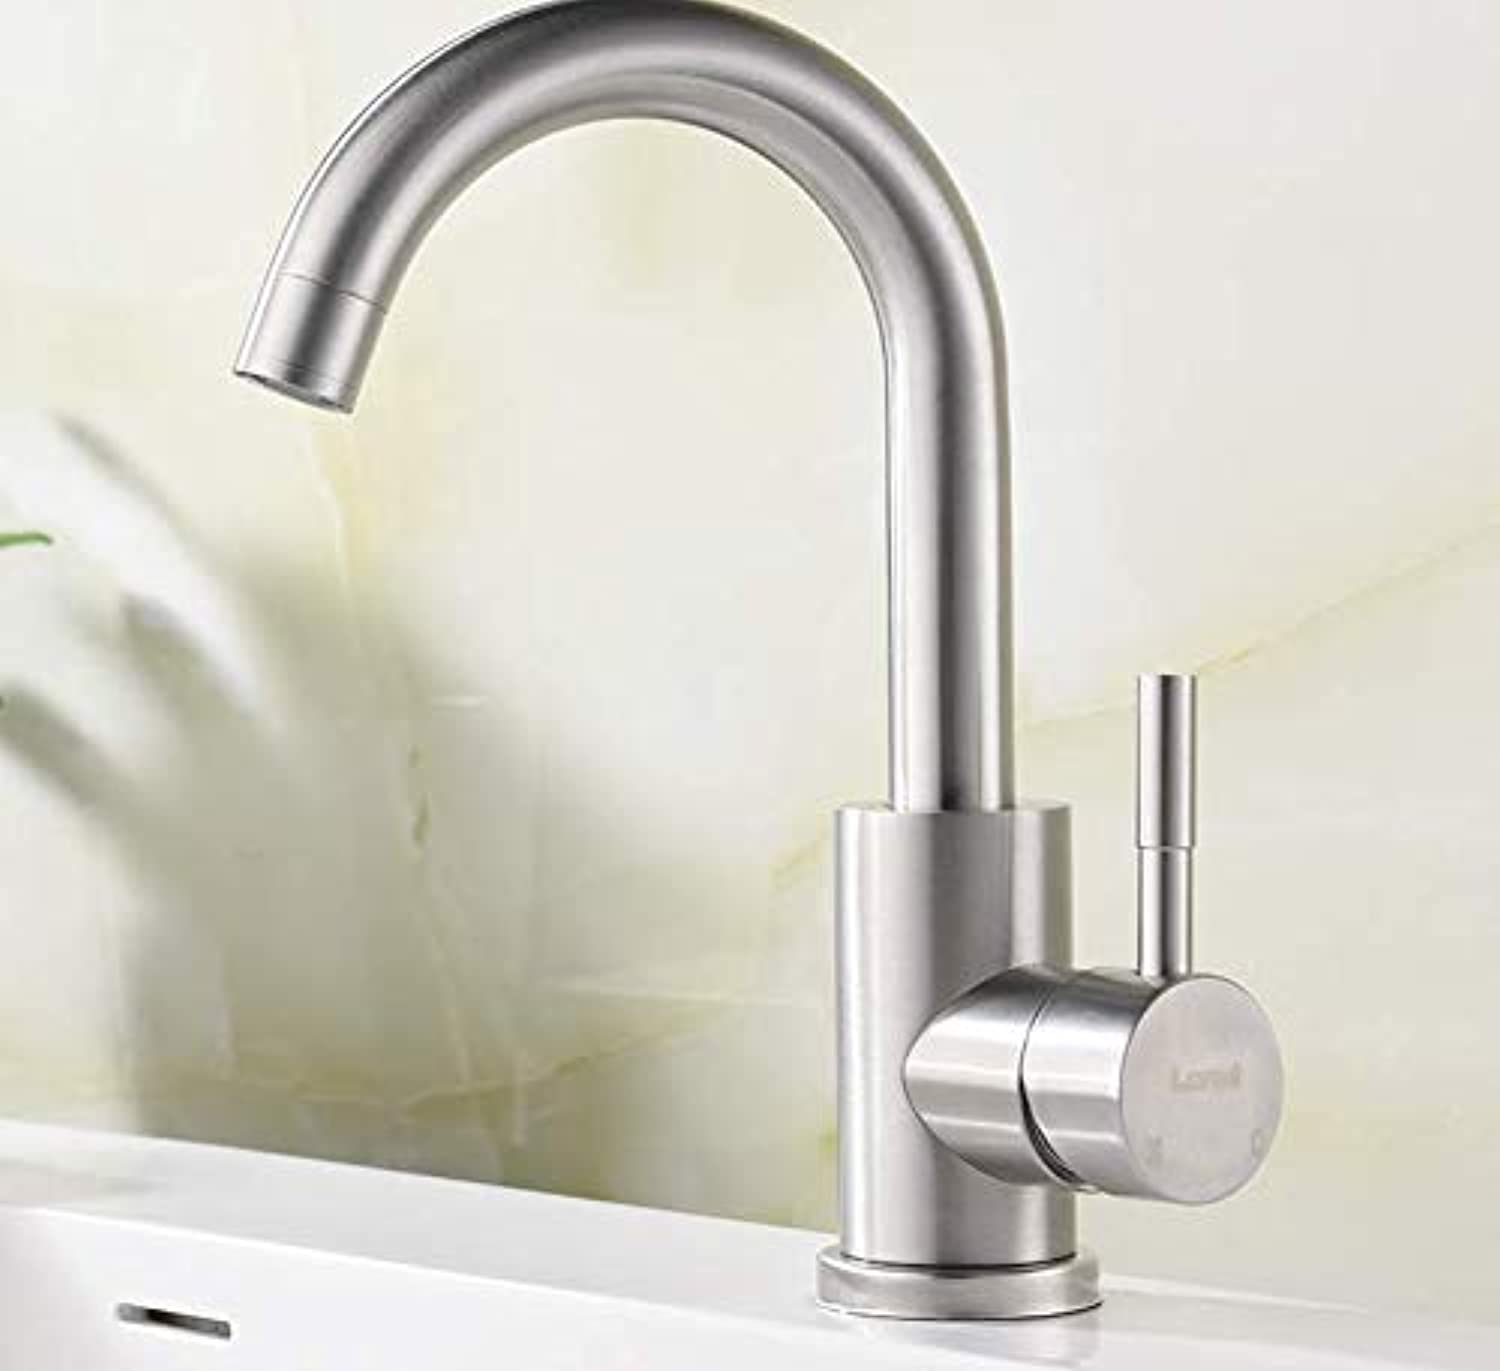 304 Stainless Steel Bathroom hot and Cold Faucet Basin Mixer Faucet Faucet